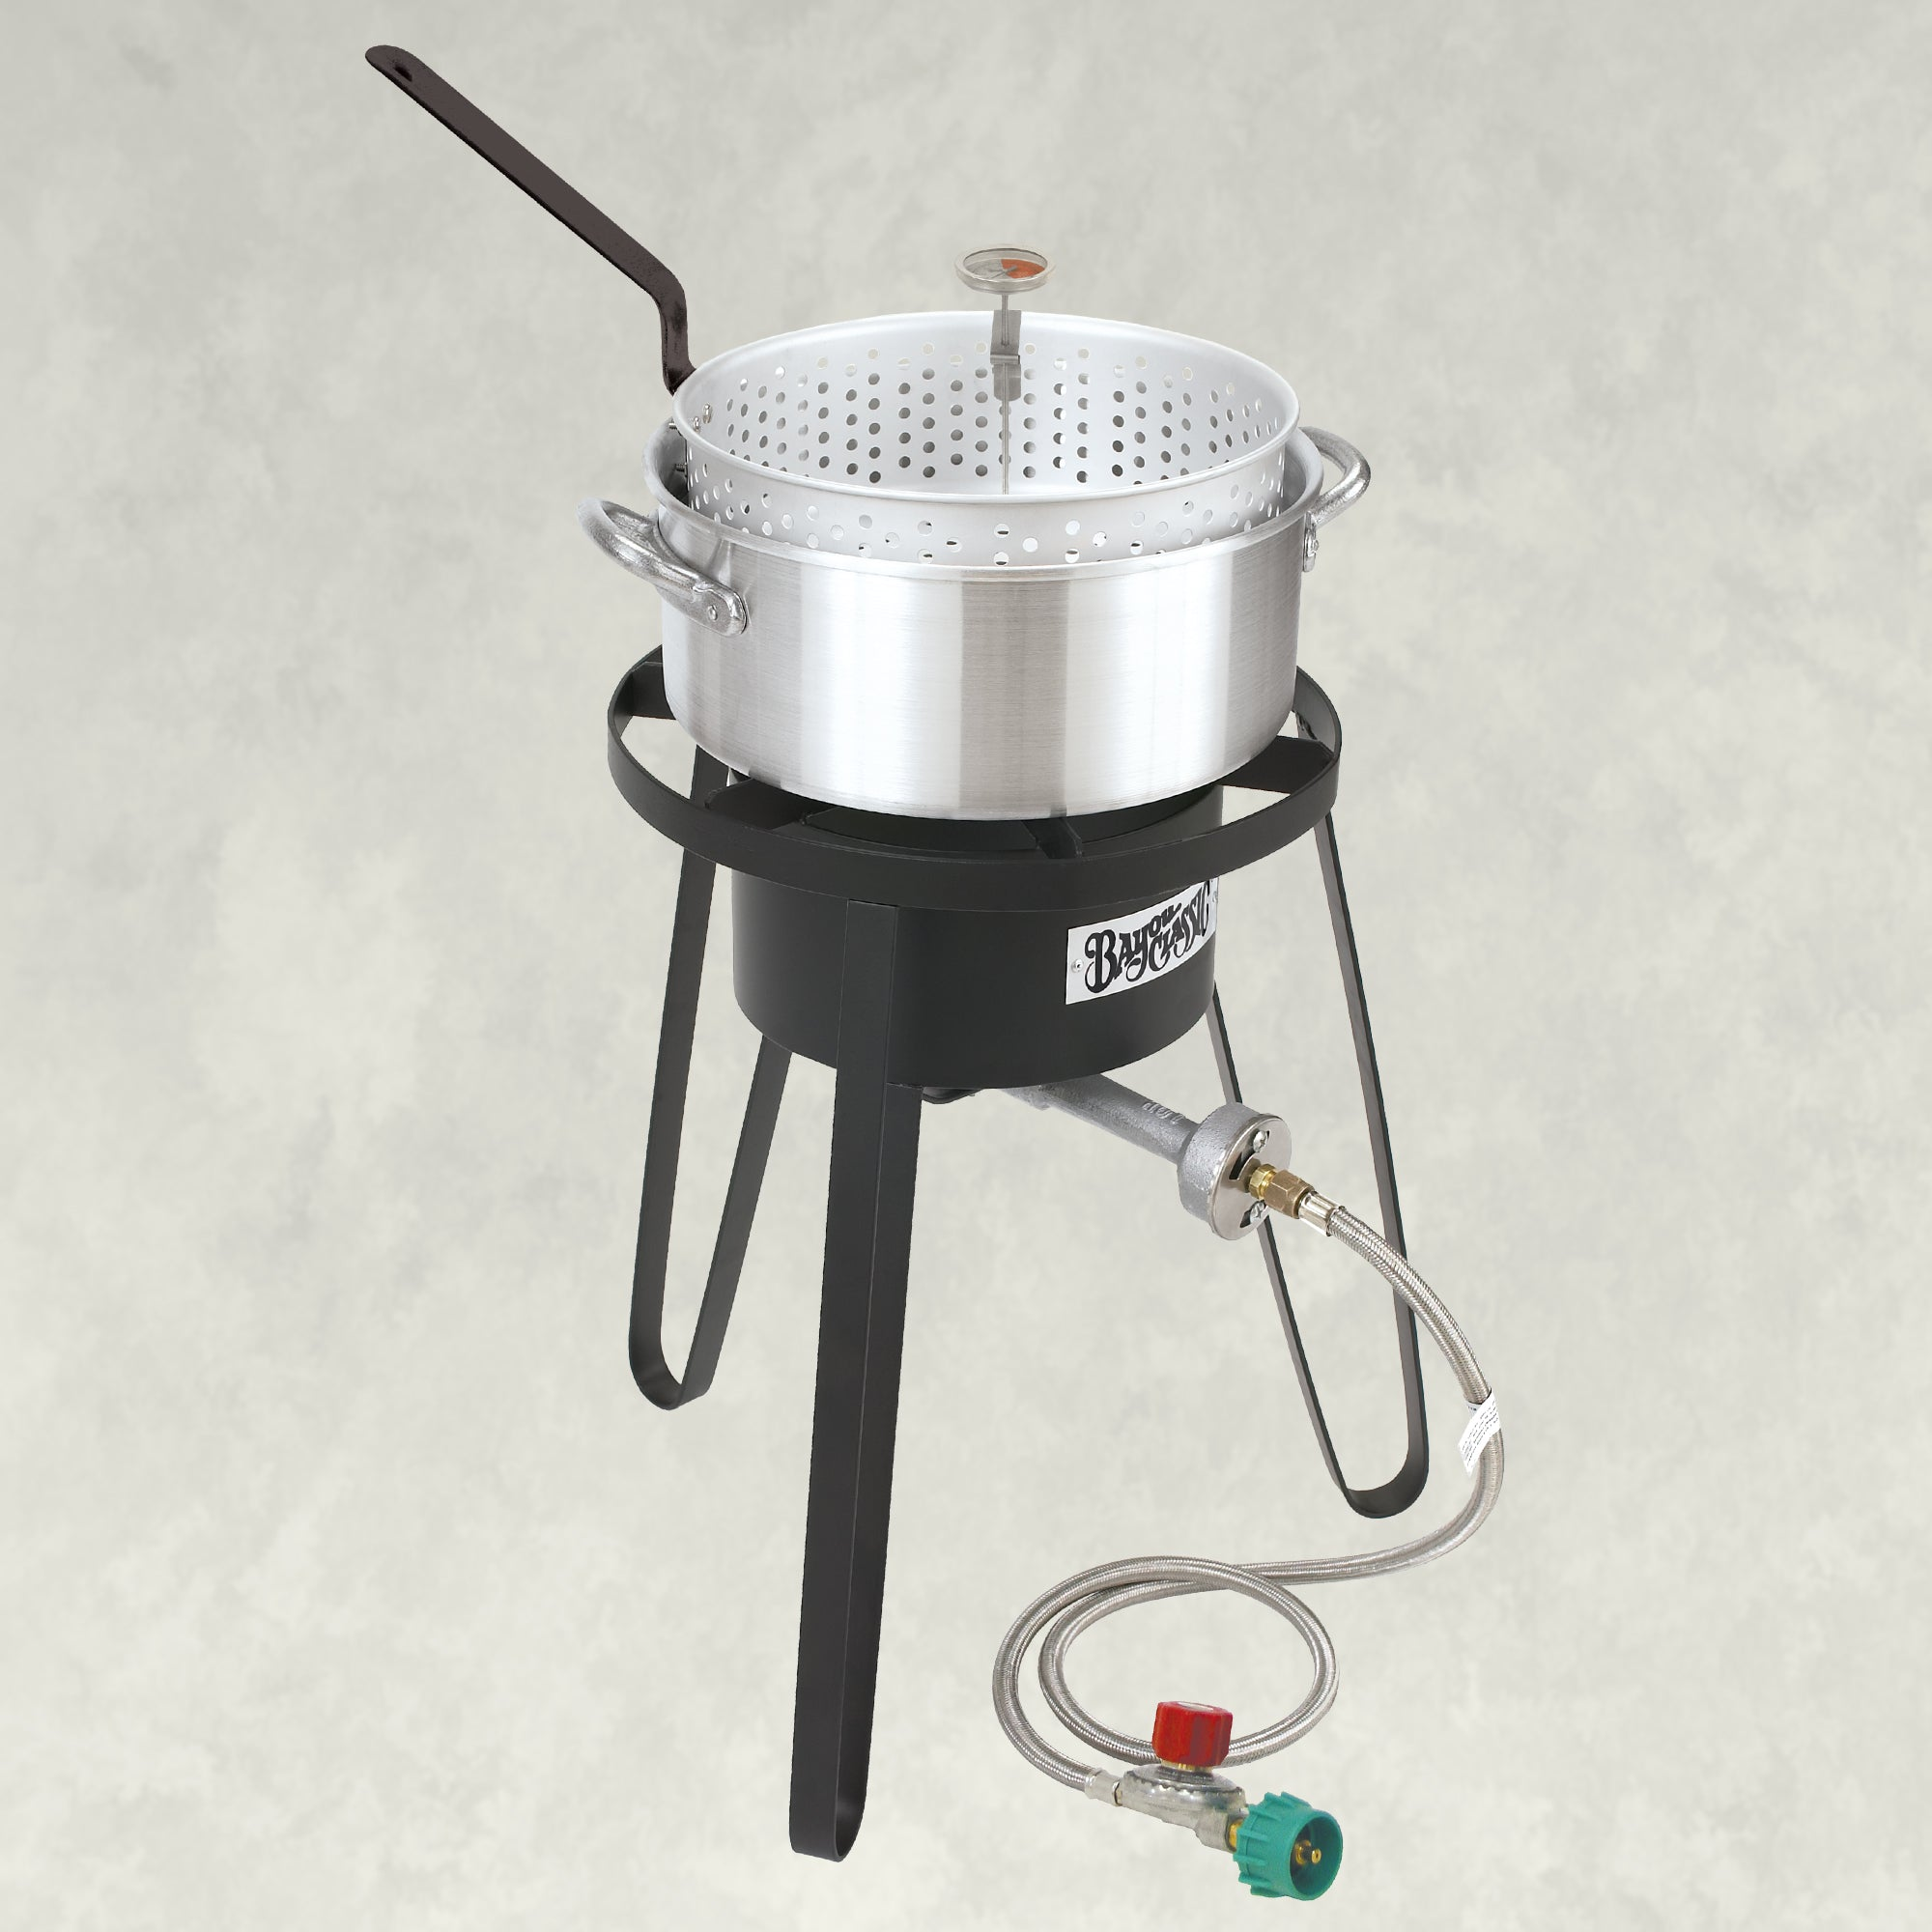 Sportsman's Choice Aluminum Fish Cooker